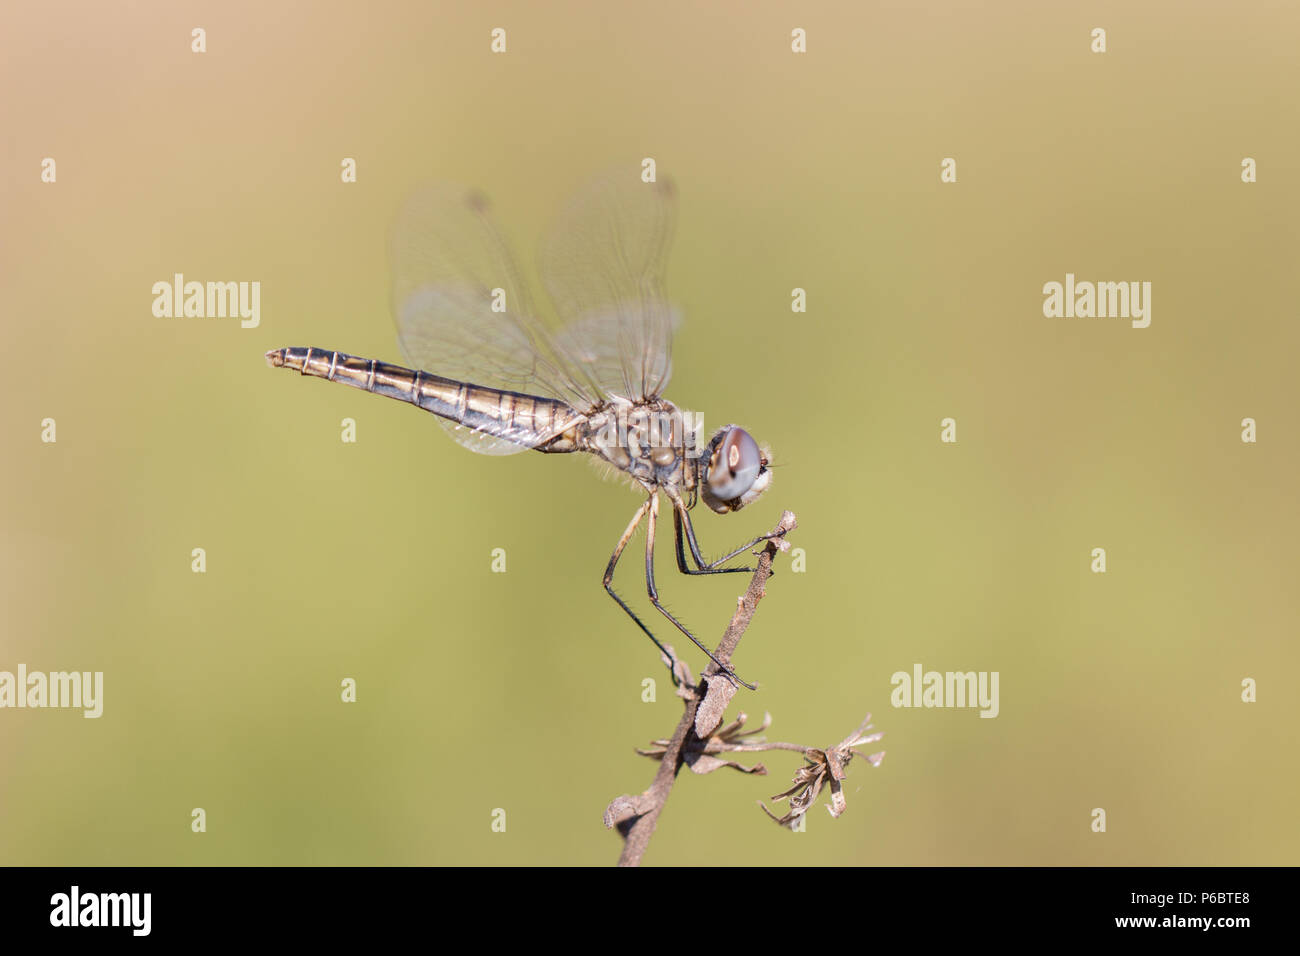 Selysiothemis nigra female dragonfly resting on a plant in Catalonia, Spain - Stock Image